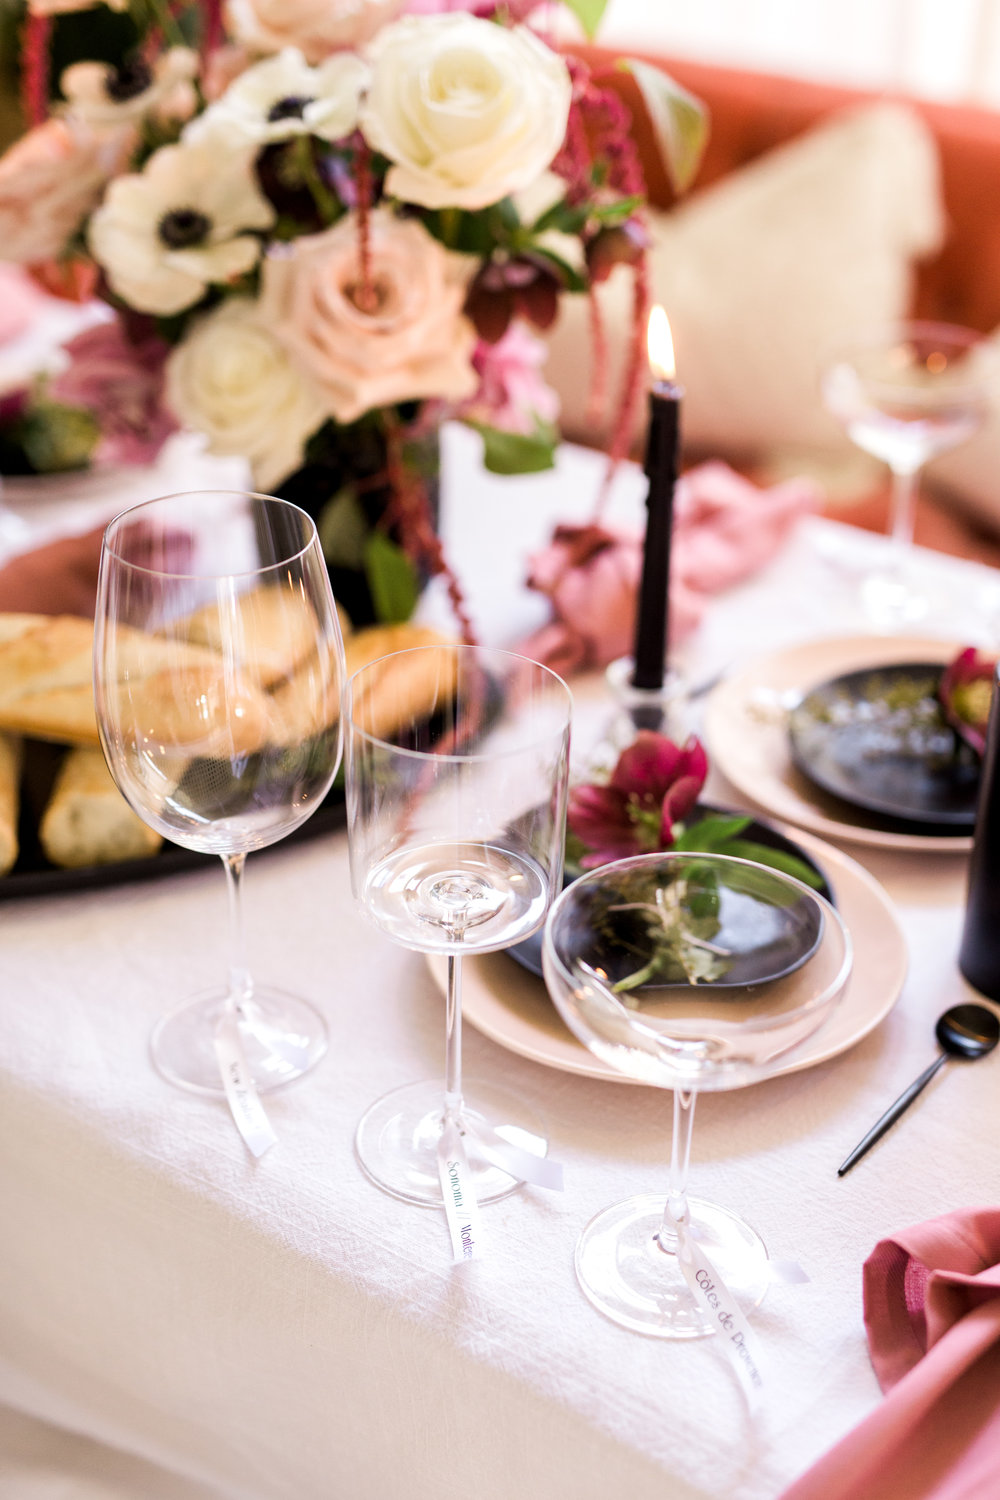 At Home Rose Tasting | A Fabulous Fete